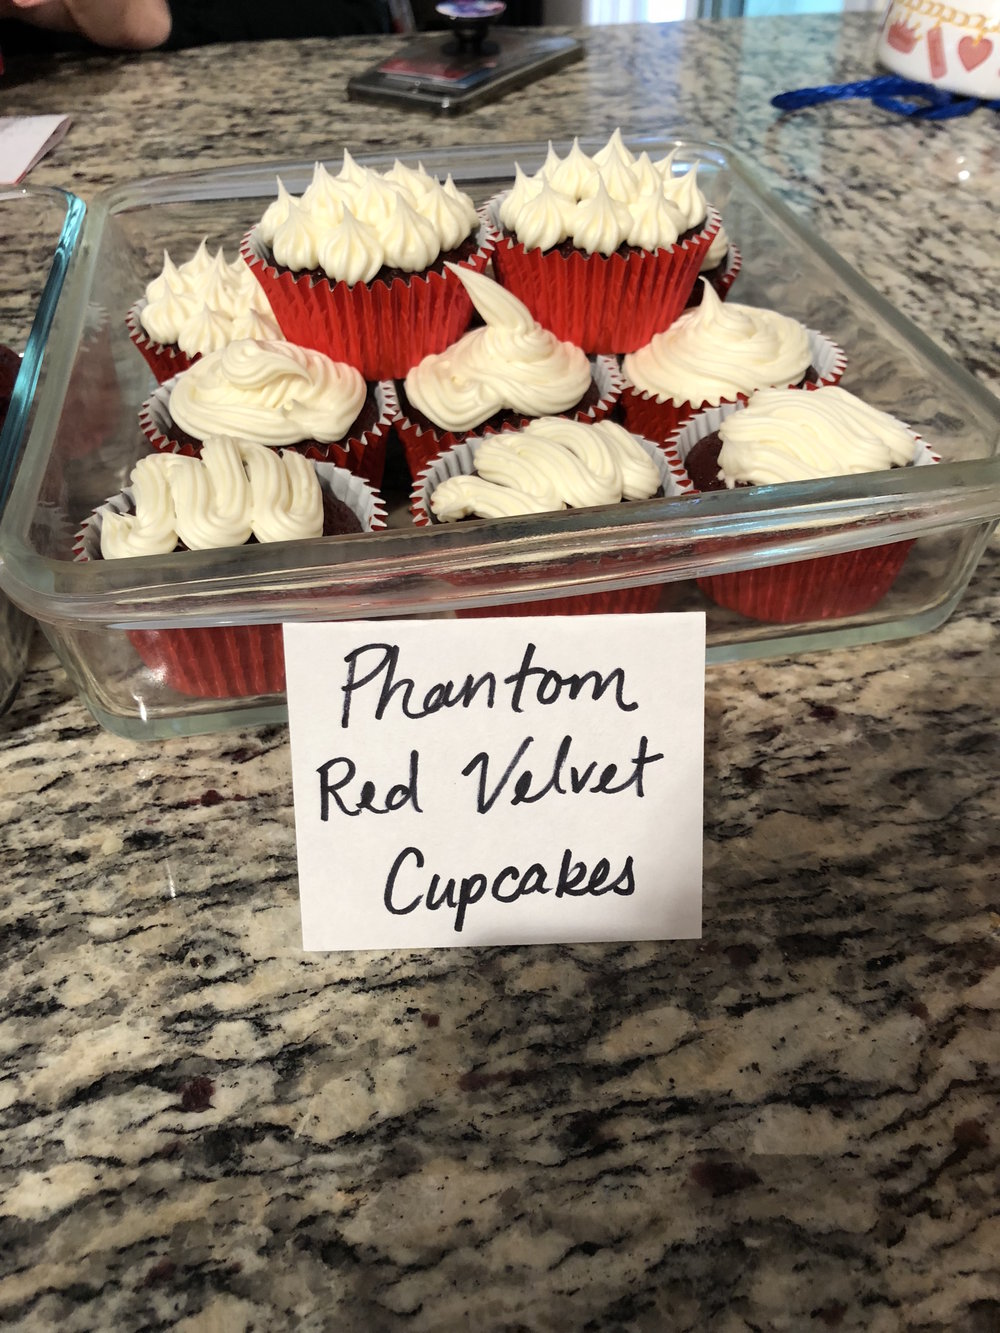 Phantom Red Velvet Cupcakes.jpg